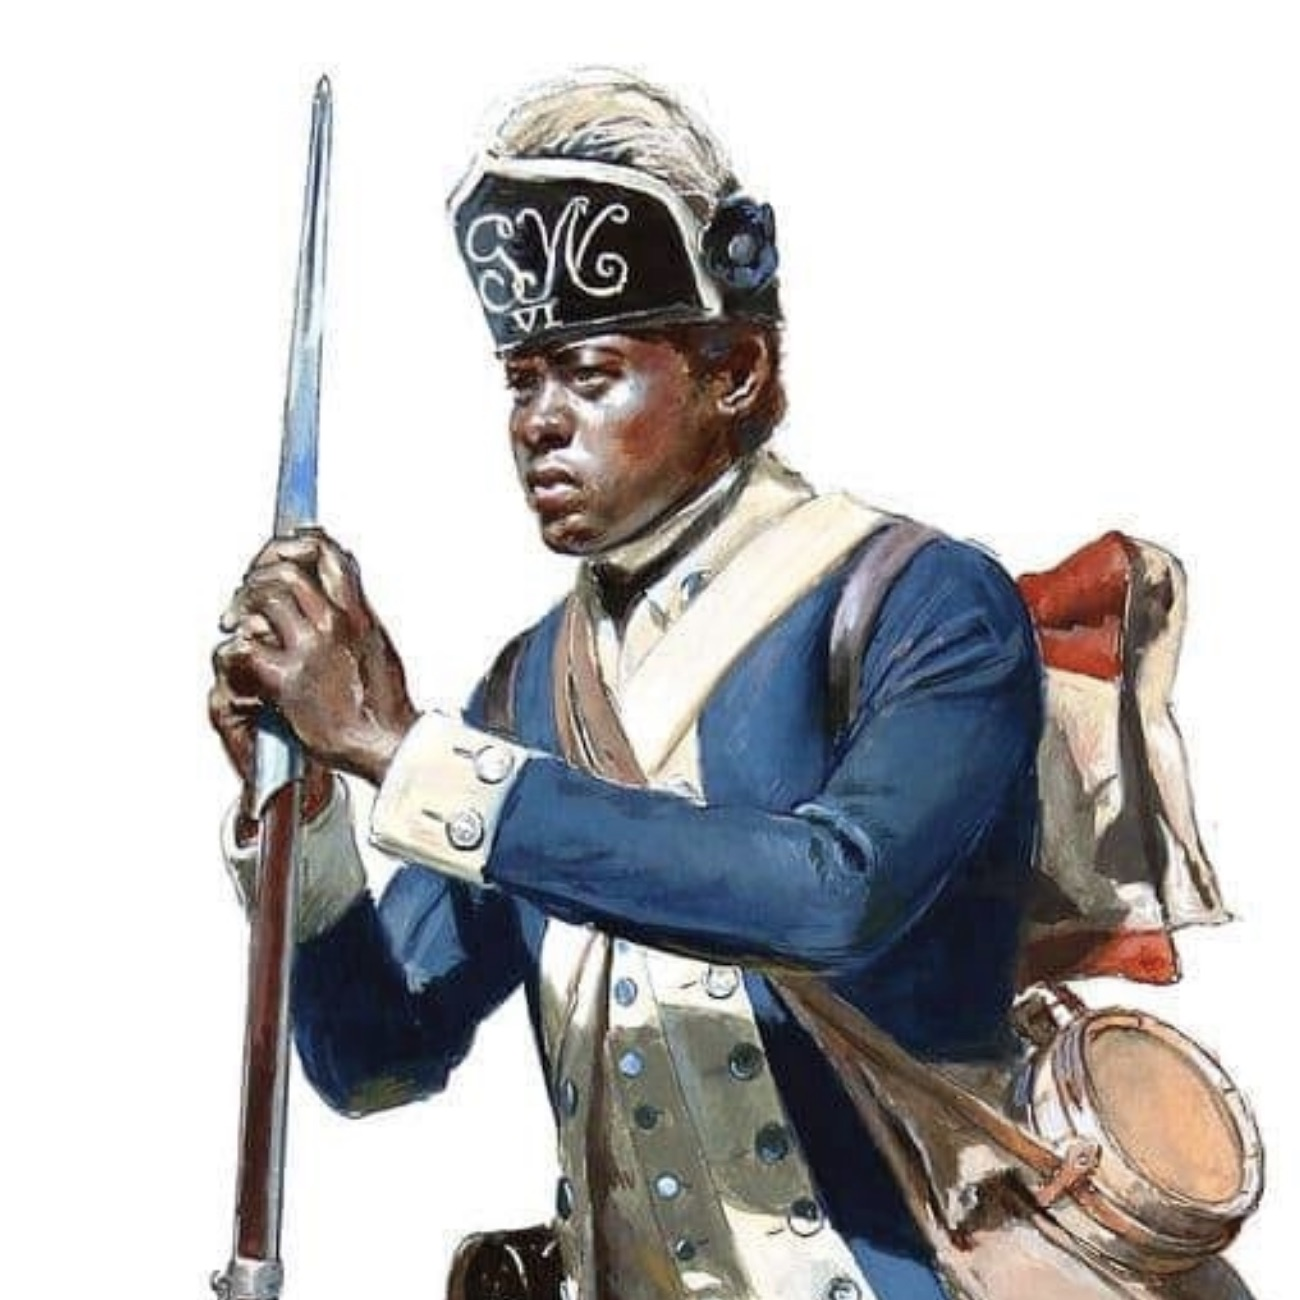 This scholarly modern depiction of a soldier of the Sixth Connecticut symbolizes the contribution of black soldiers to the achievements of the American Revolution.